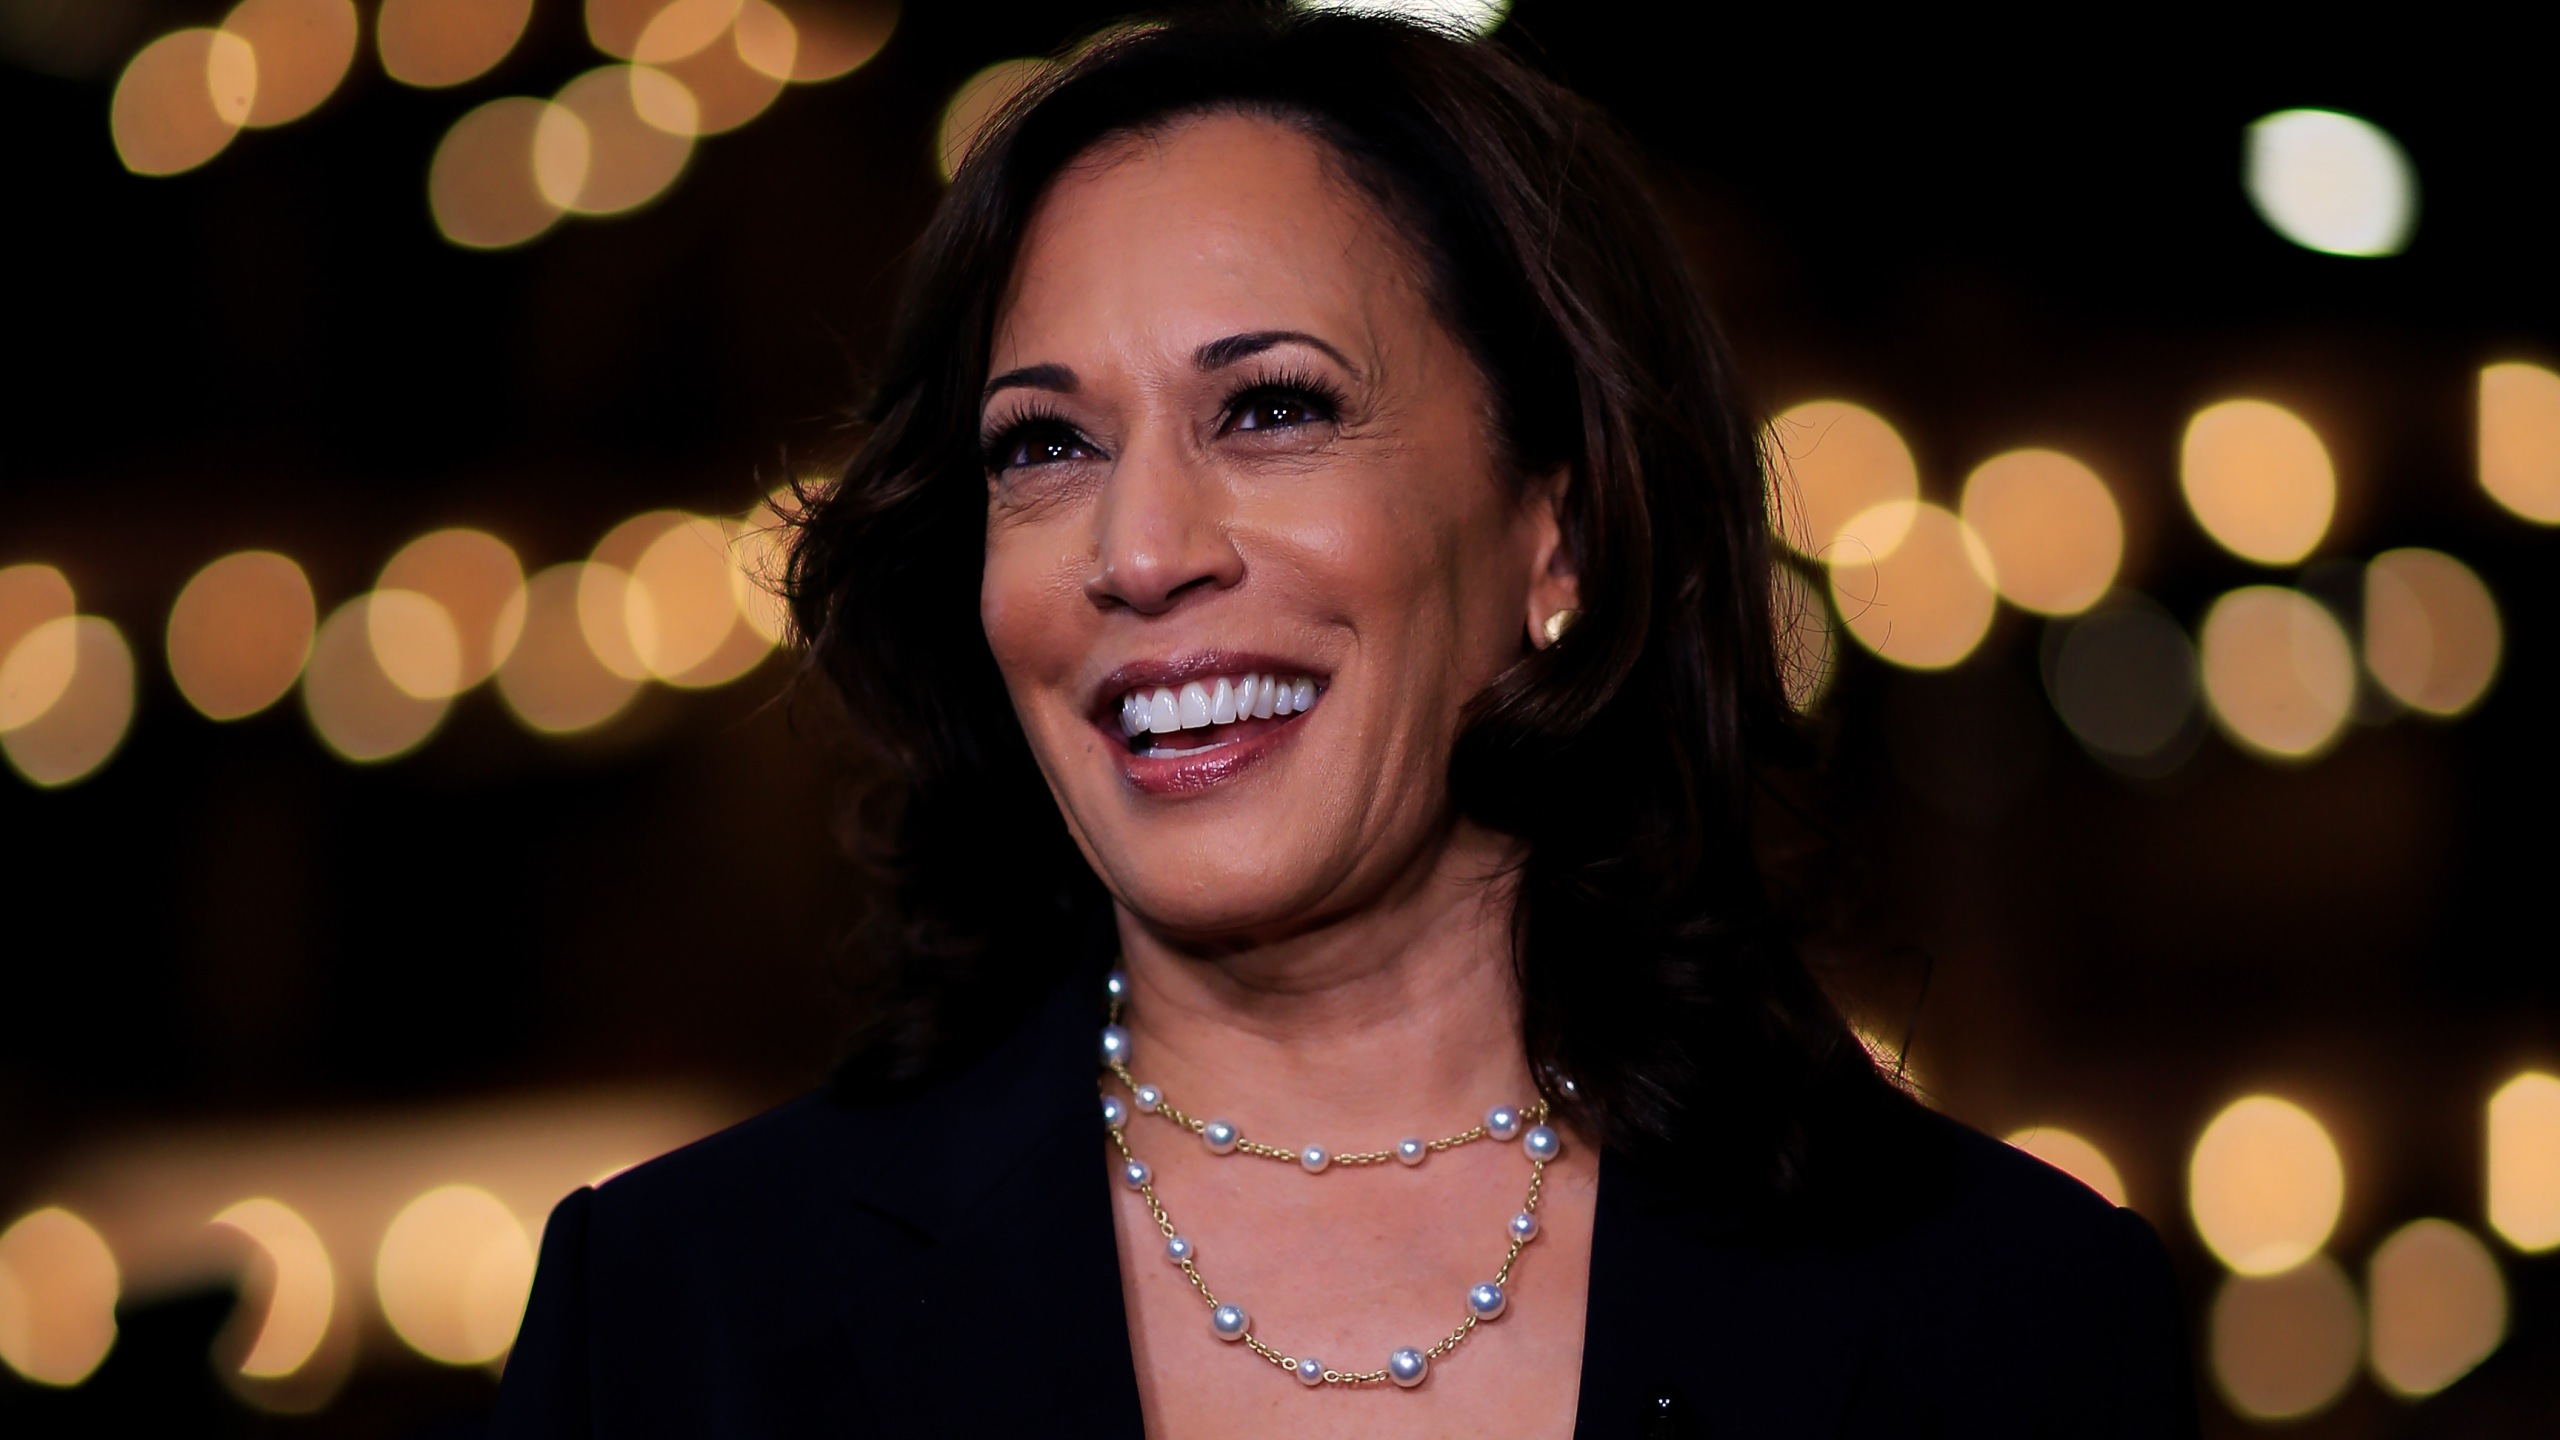 Democratic presidential candidate Sen. Kamala Harris speaks during a television interview after the second night of the first Democratic presidential debate on June 27, 2019, in Miami, Florida. (Cliff Hawkins/Getty Images)